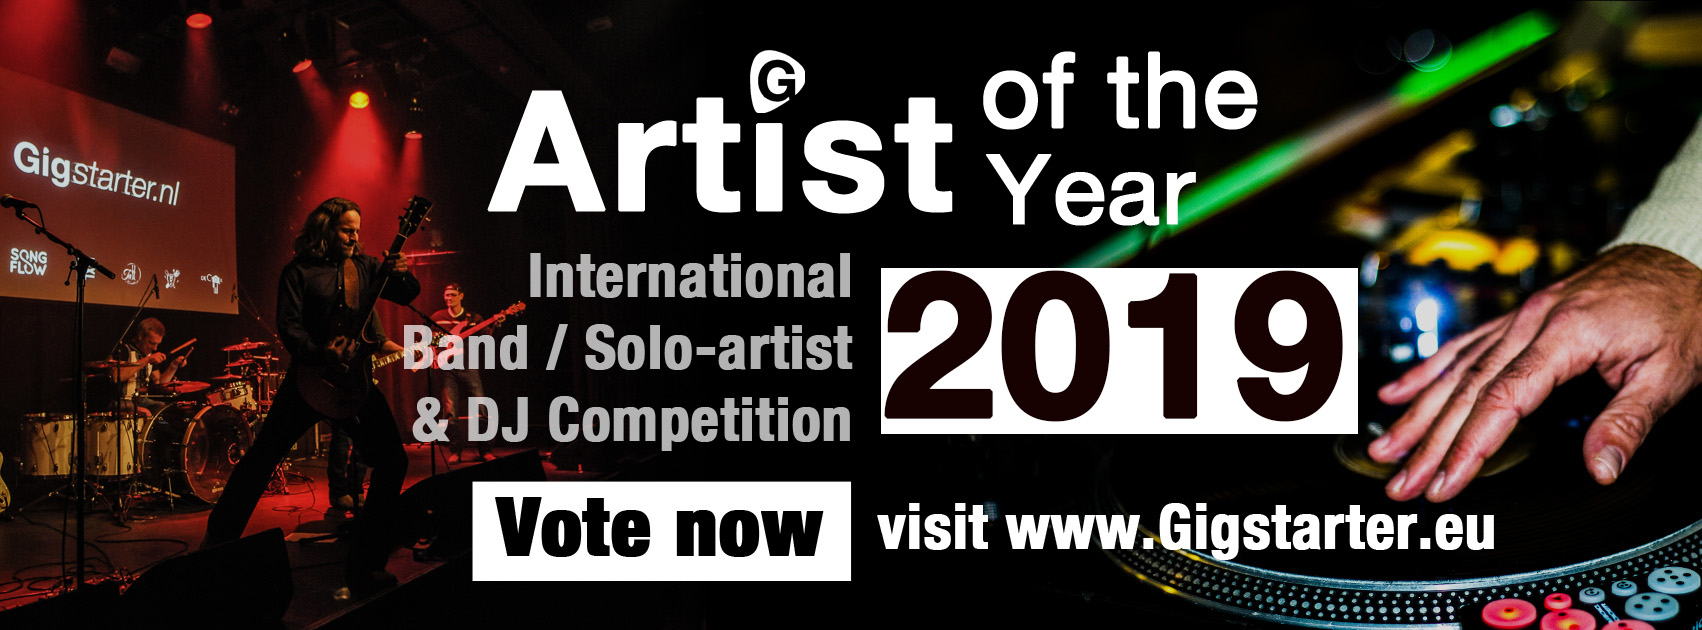 Gigstarter Artist of the Year 2019 competition